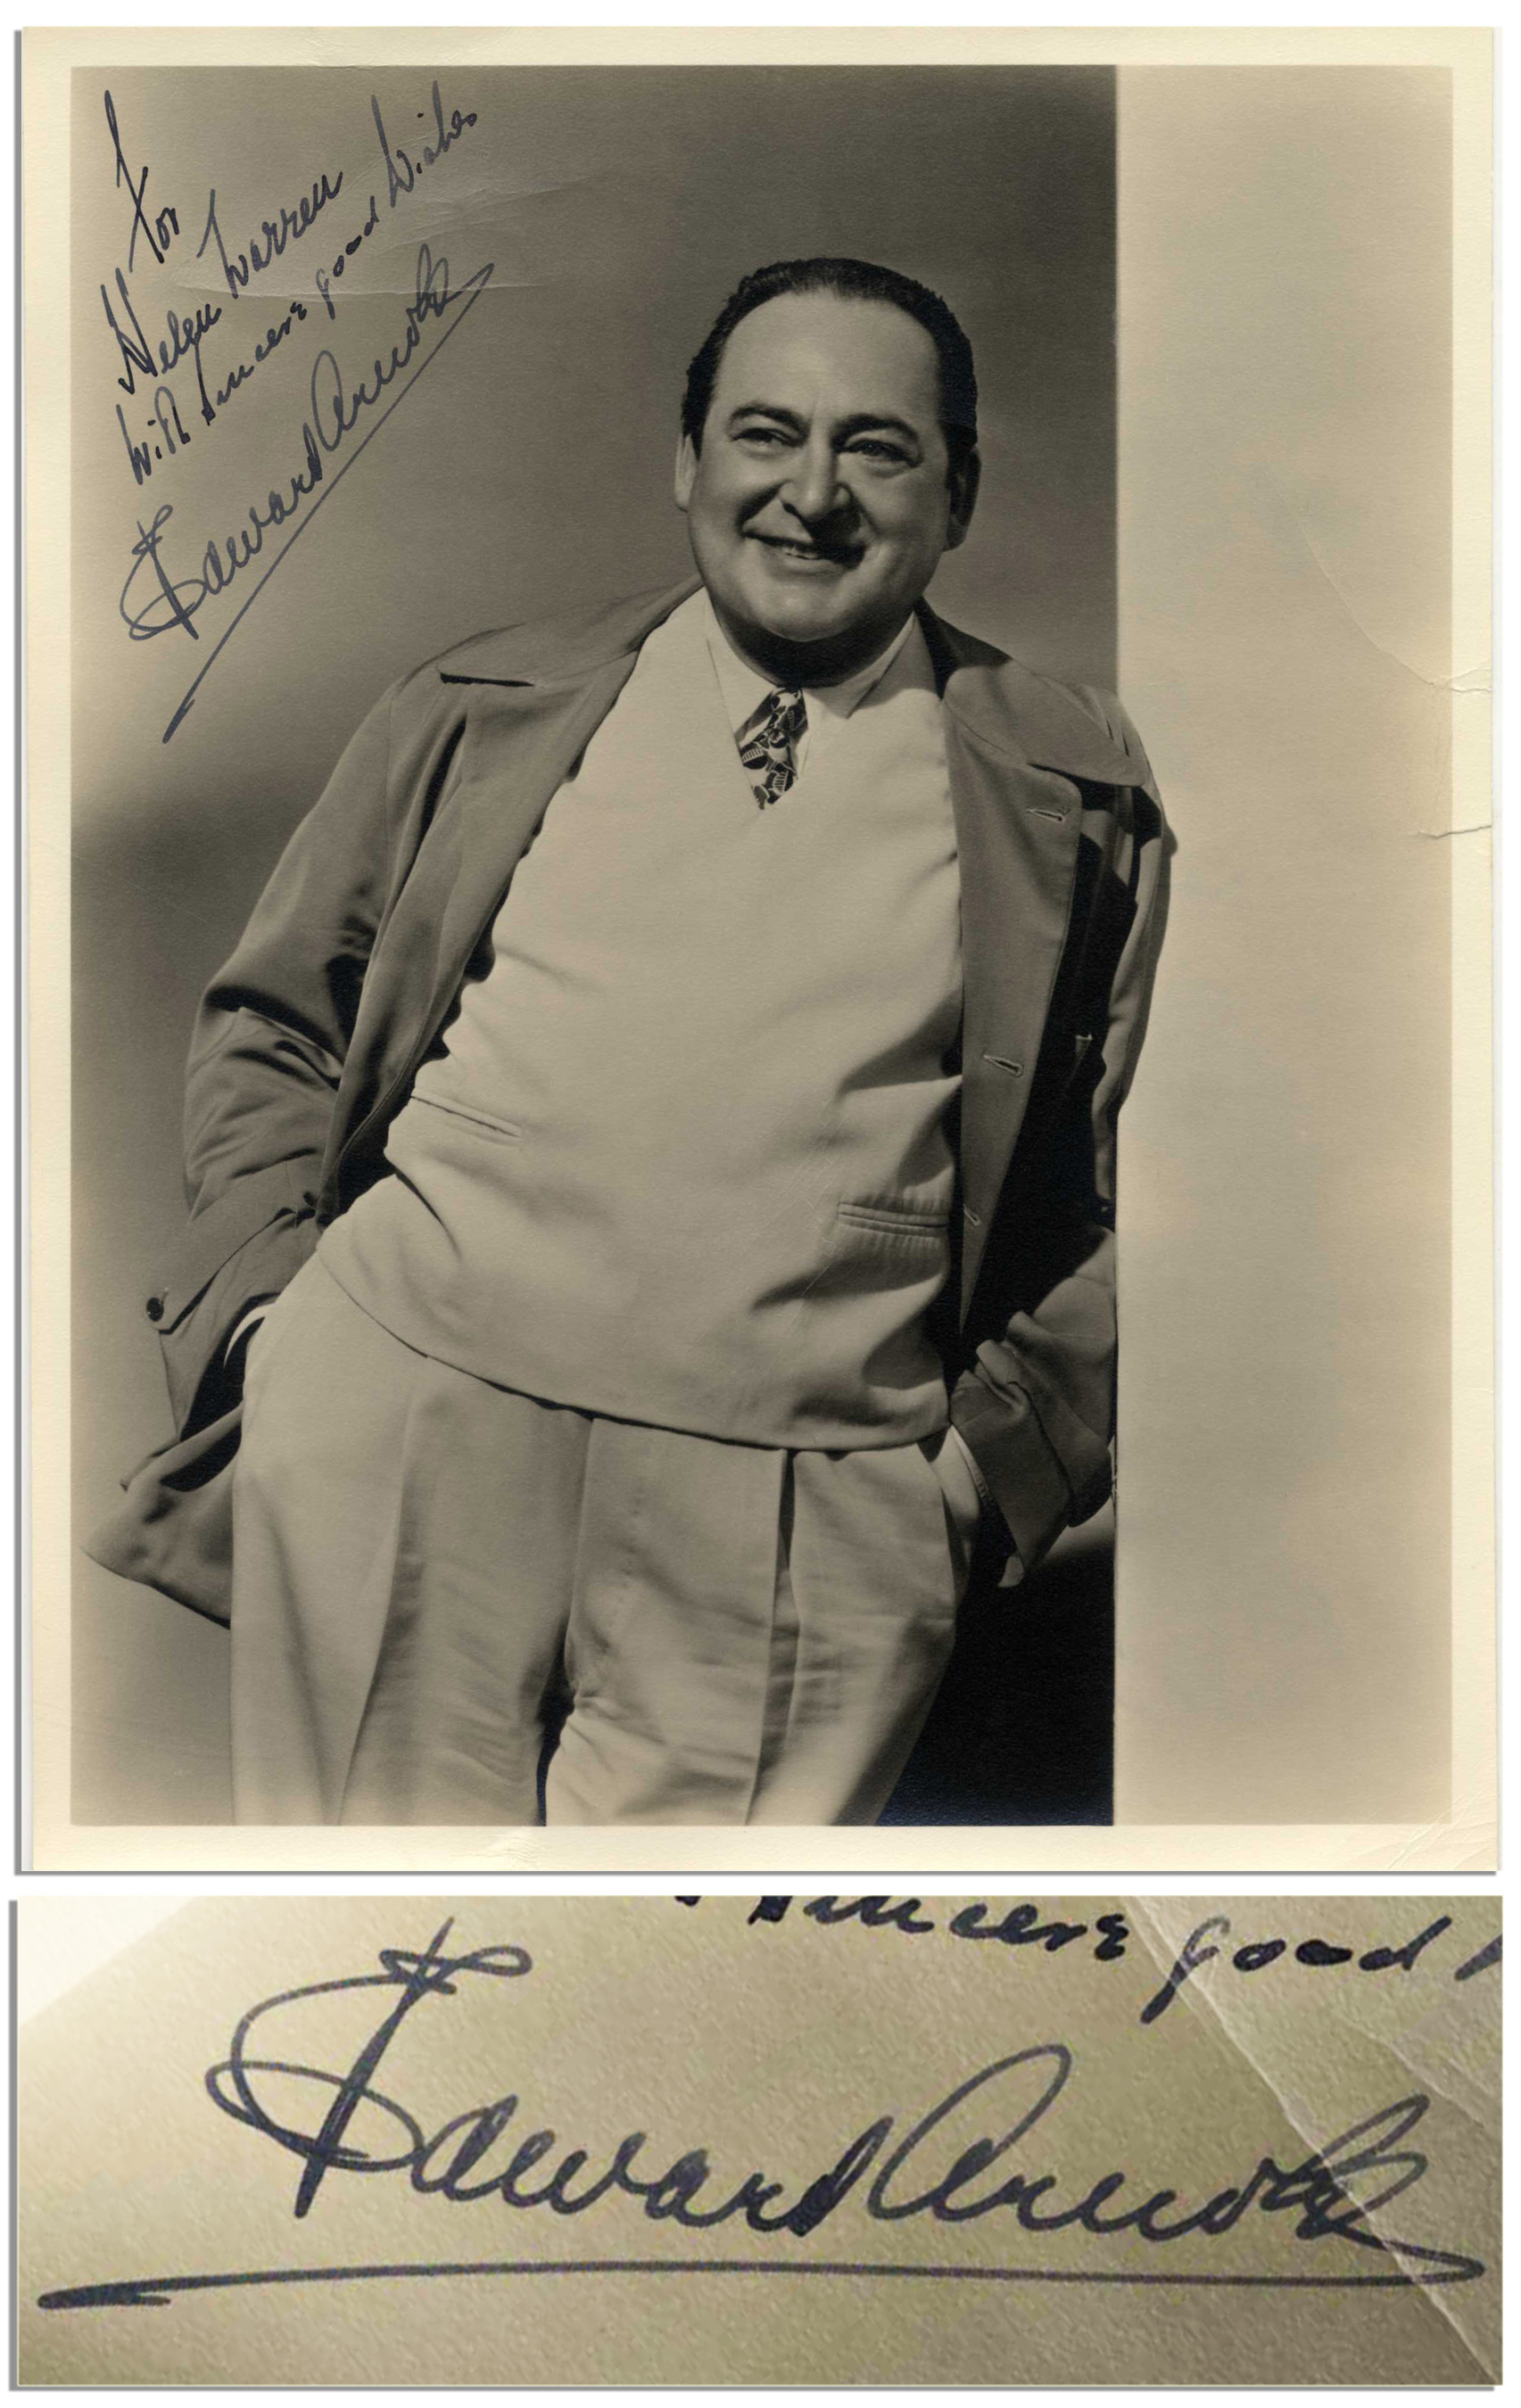 edward arnold lacrosseedward arnold (publishers) ltd, edward arnold publisher, edward arnold tcd, edward arnold, edward arnold jr, edward arnold actor, edward arnold scrap processors, edward arnold imdb, edward arnold jr biography, edward arnold court, edward arnold jr photos, edward arnold chapman, edward arnold lebanon pa, edward arnold biography, edward arnold olswang, edward arnold lacrosse, edward arnold facebook, edward arnold linkedin, edward arnold jewish